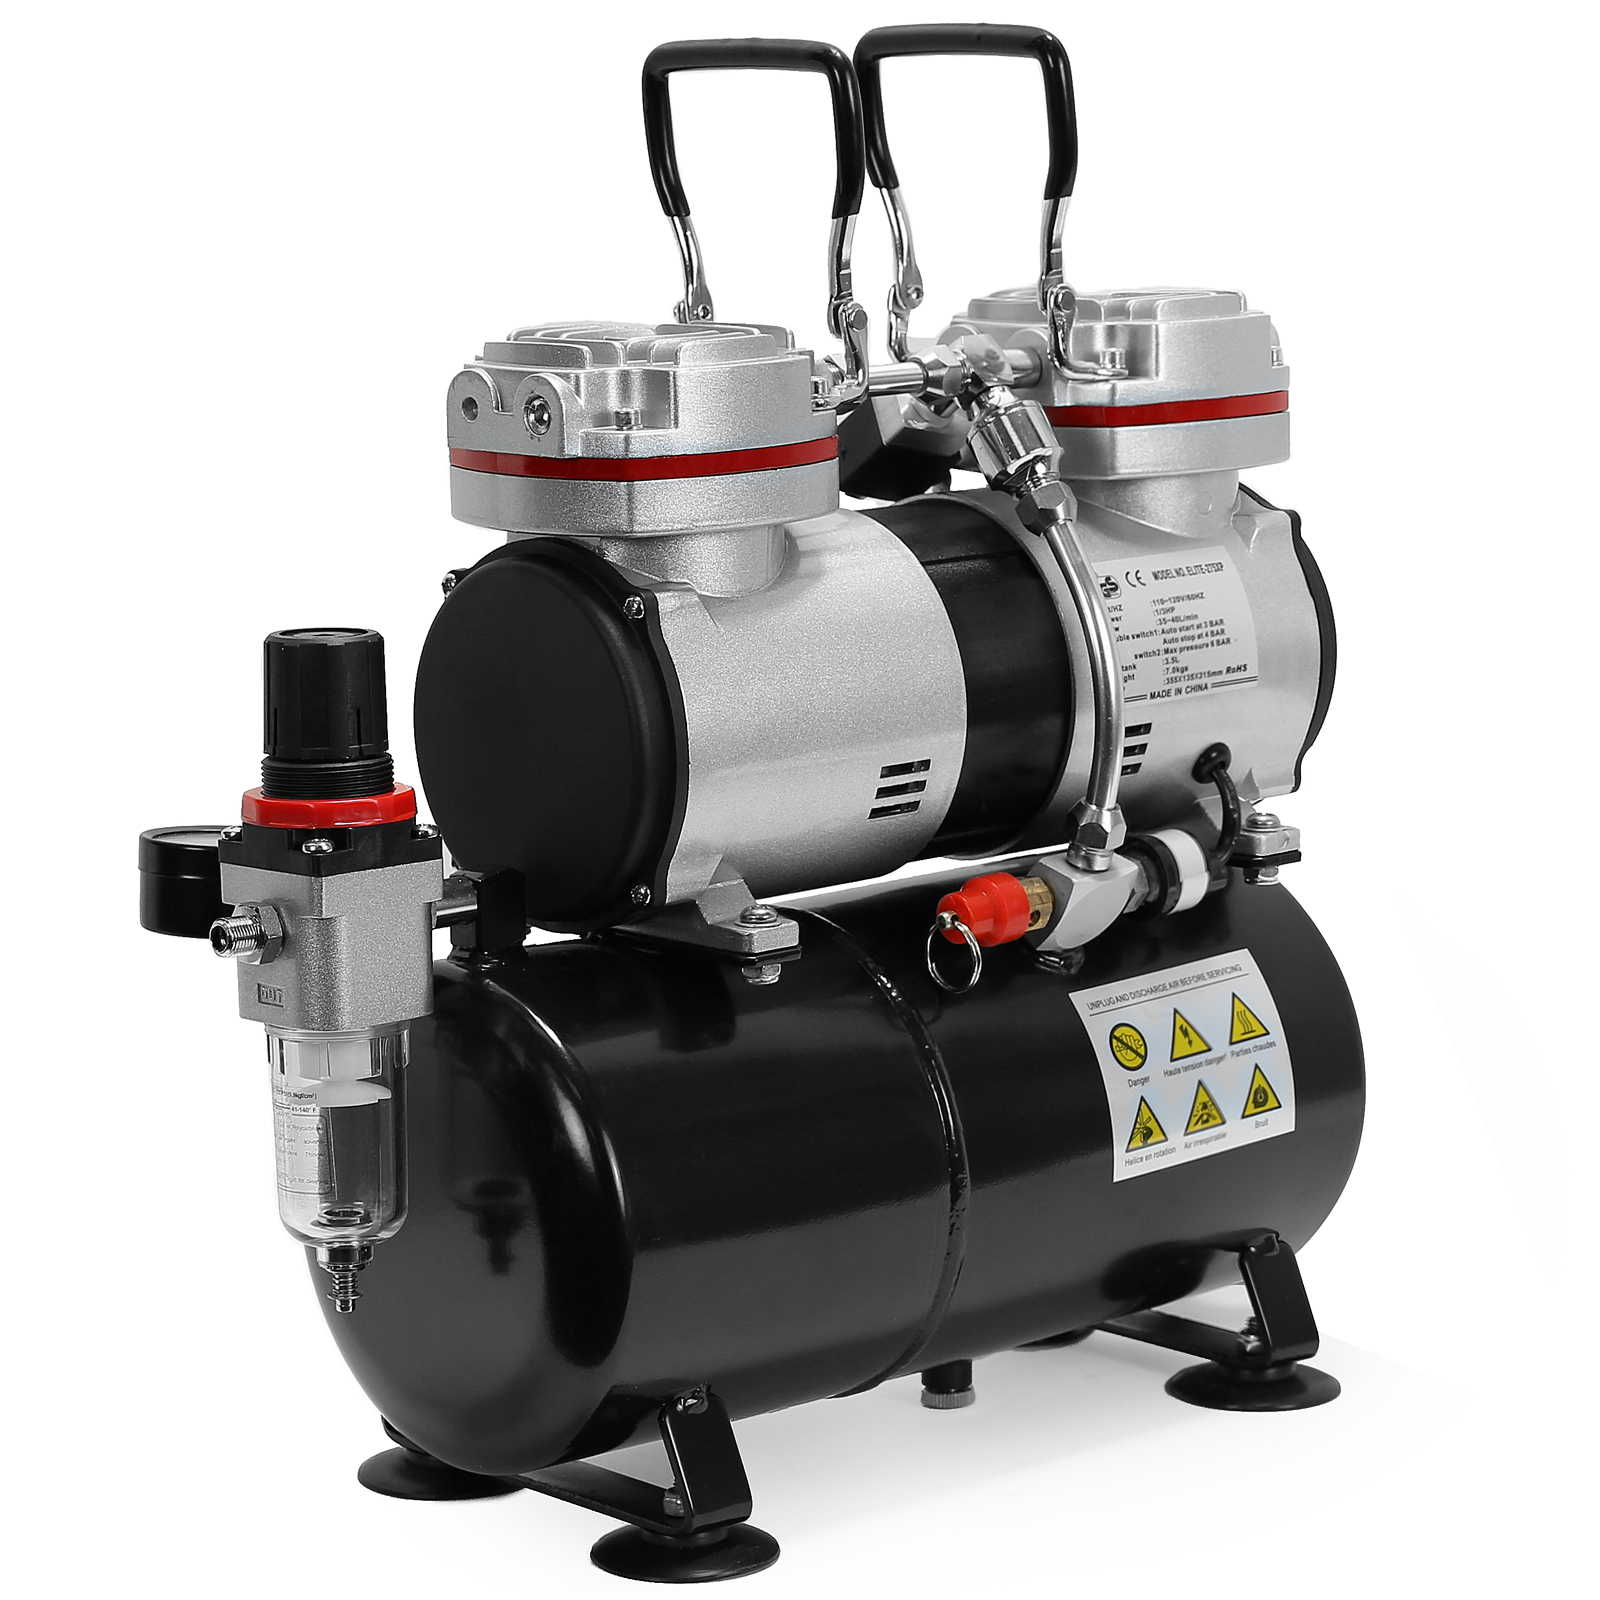 Regulator Quiet Professional Pump Gauge and Water Trap PointZero 1//3 HP Double Piston Airbrush Compressor with Air Tank